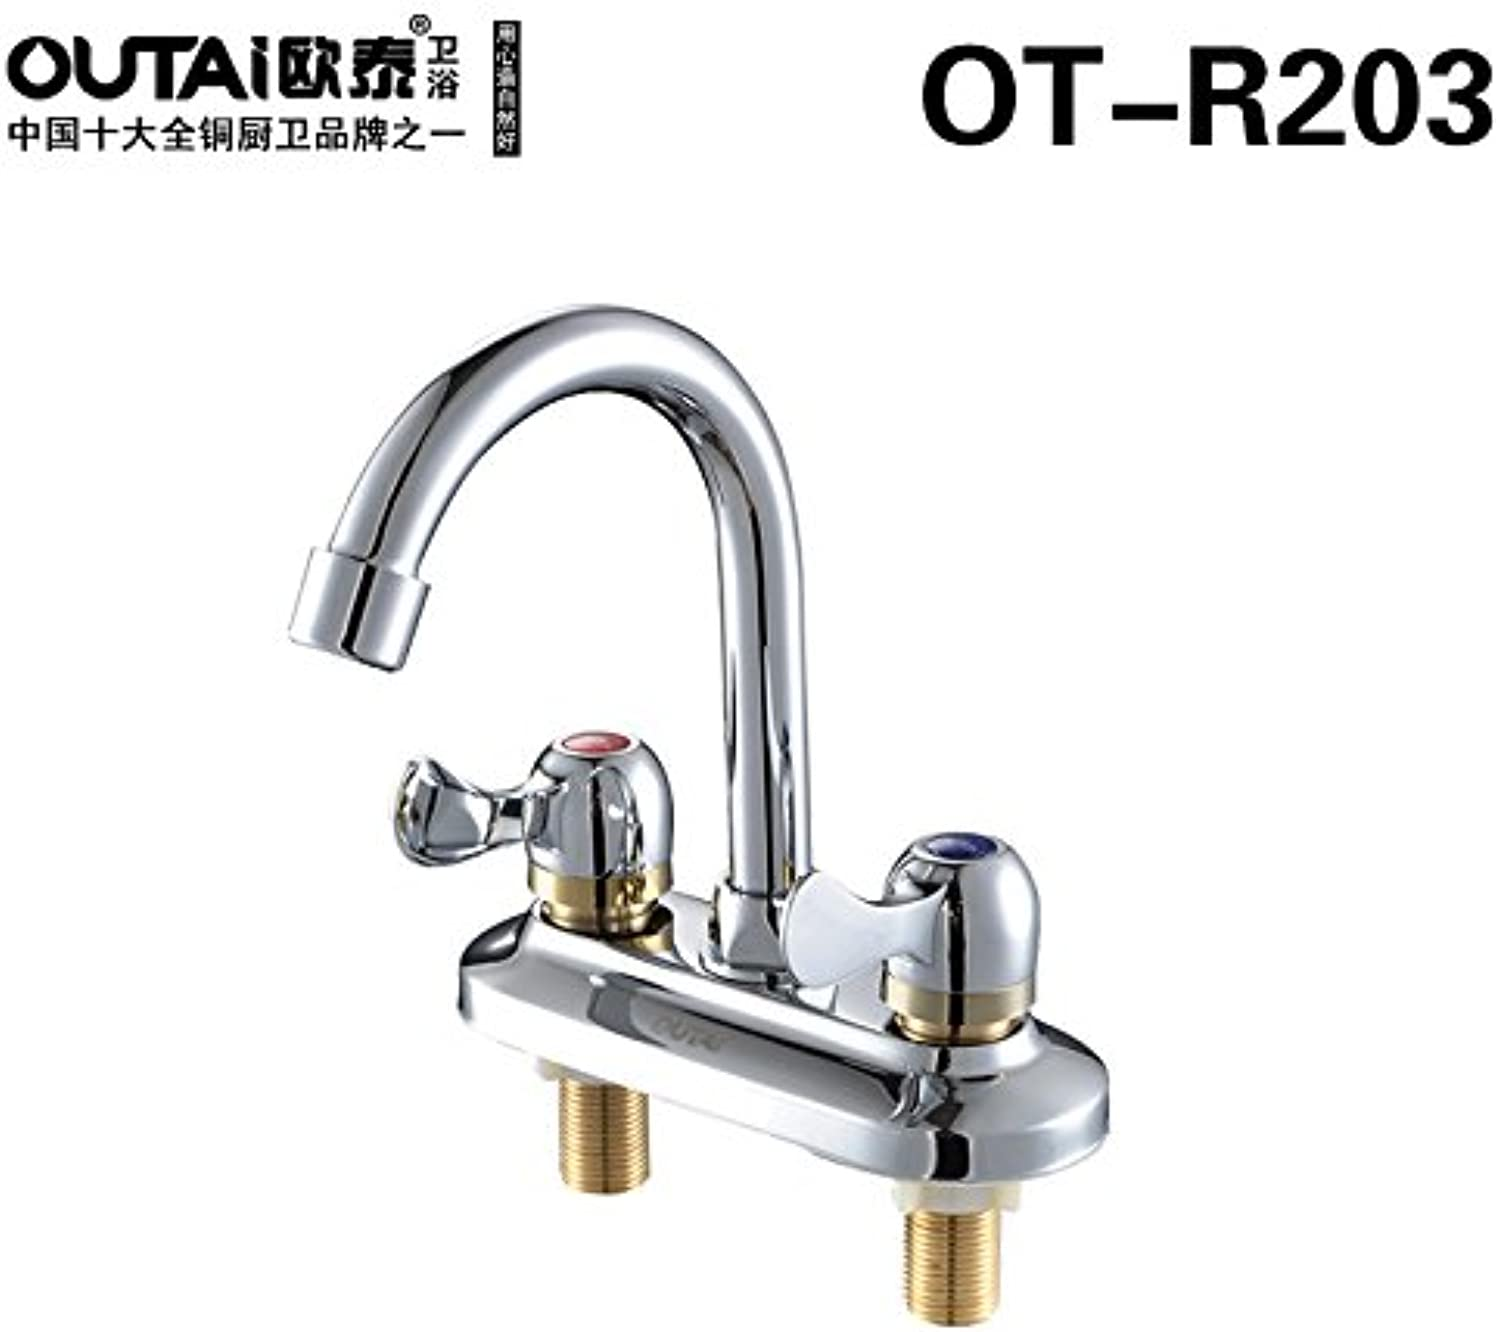 YUSPko Rectangular Bathroom Faucet Chrome Plated Hot, Cold Brass Faucet  Single Handle One Hole Faucet Face Basin Faucet Ceramic Disc Multi Purpose  Face ...